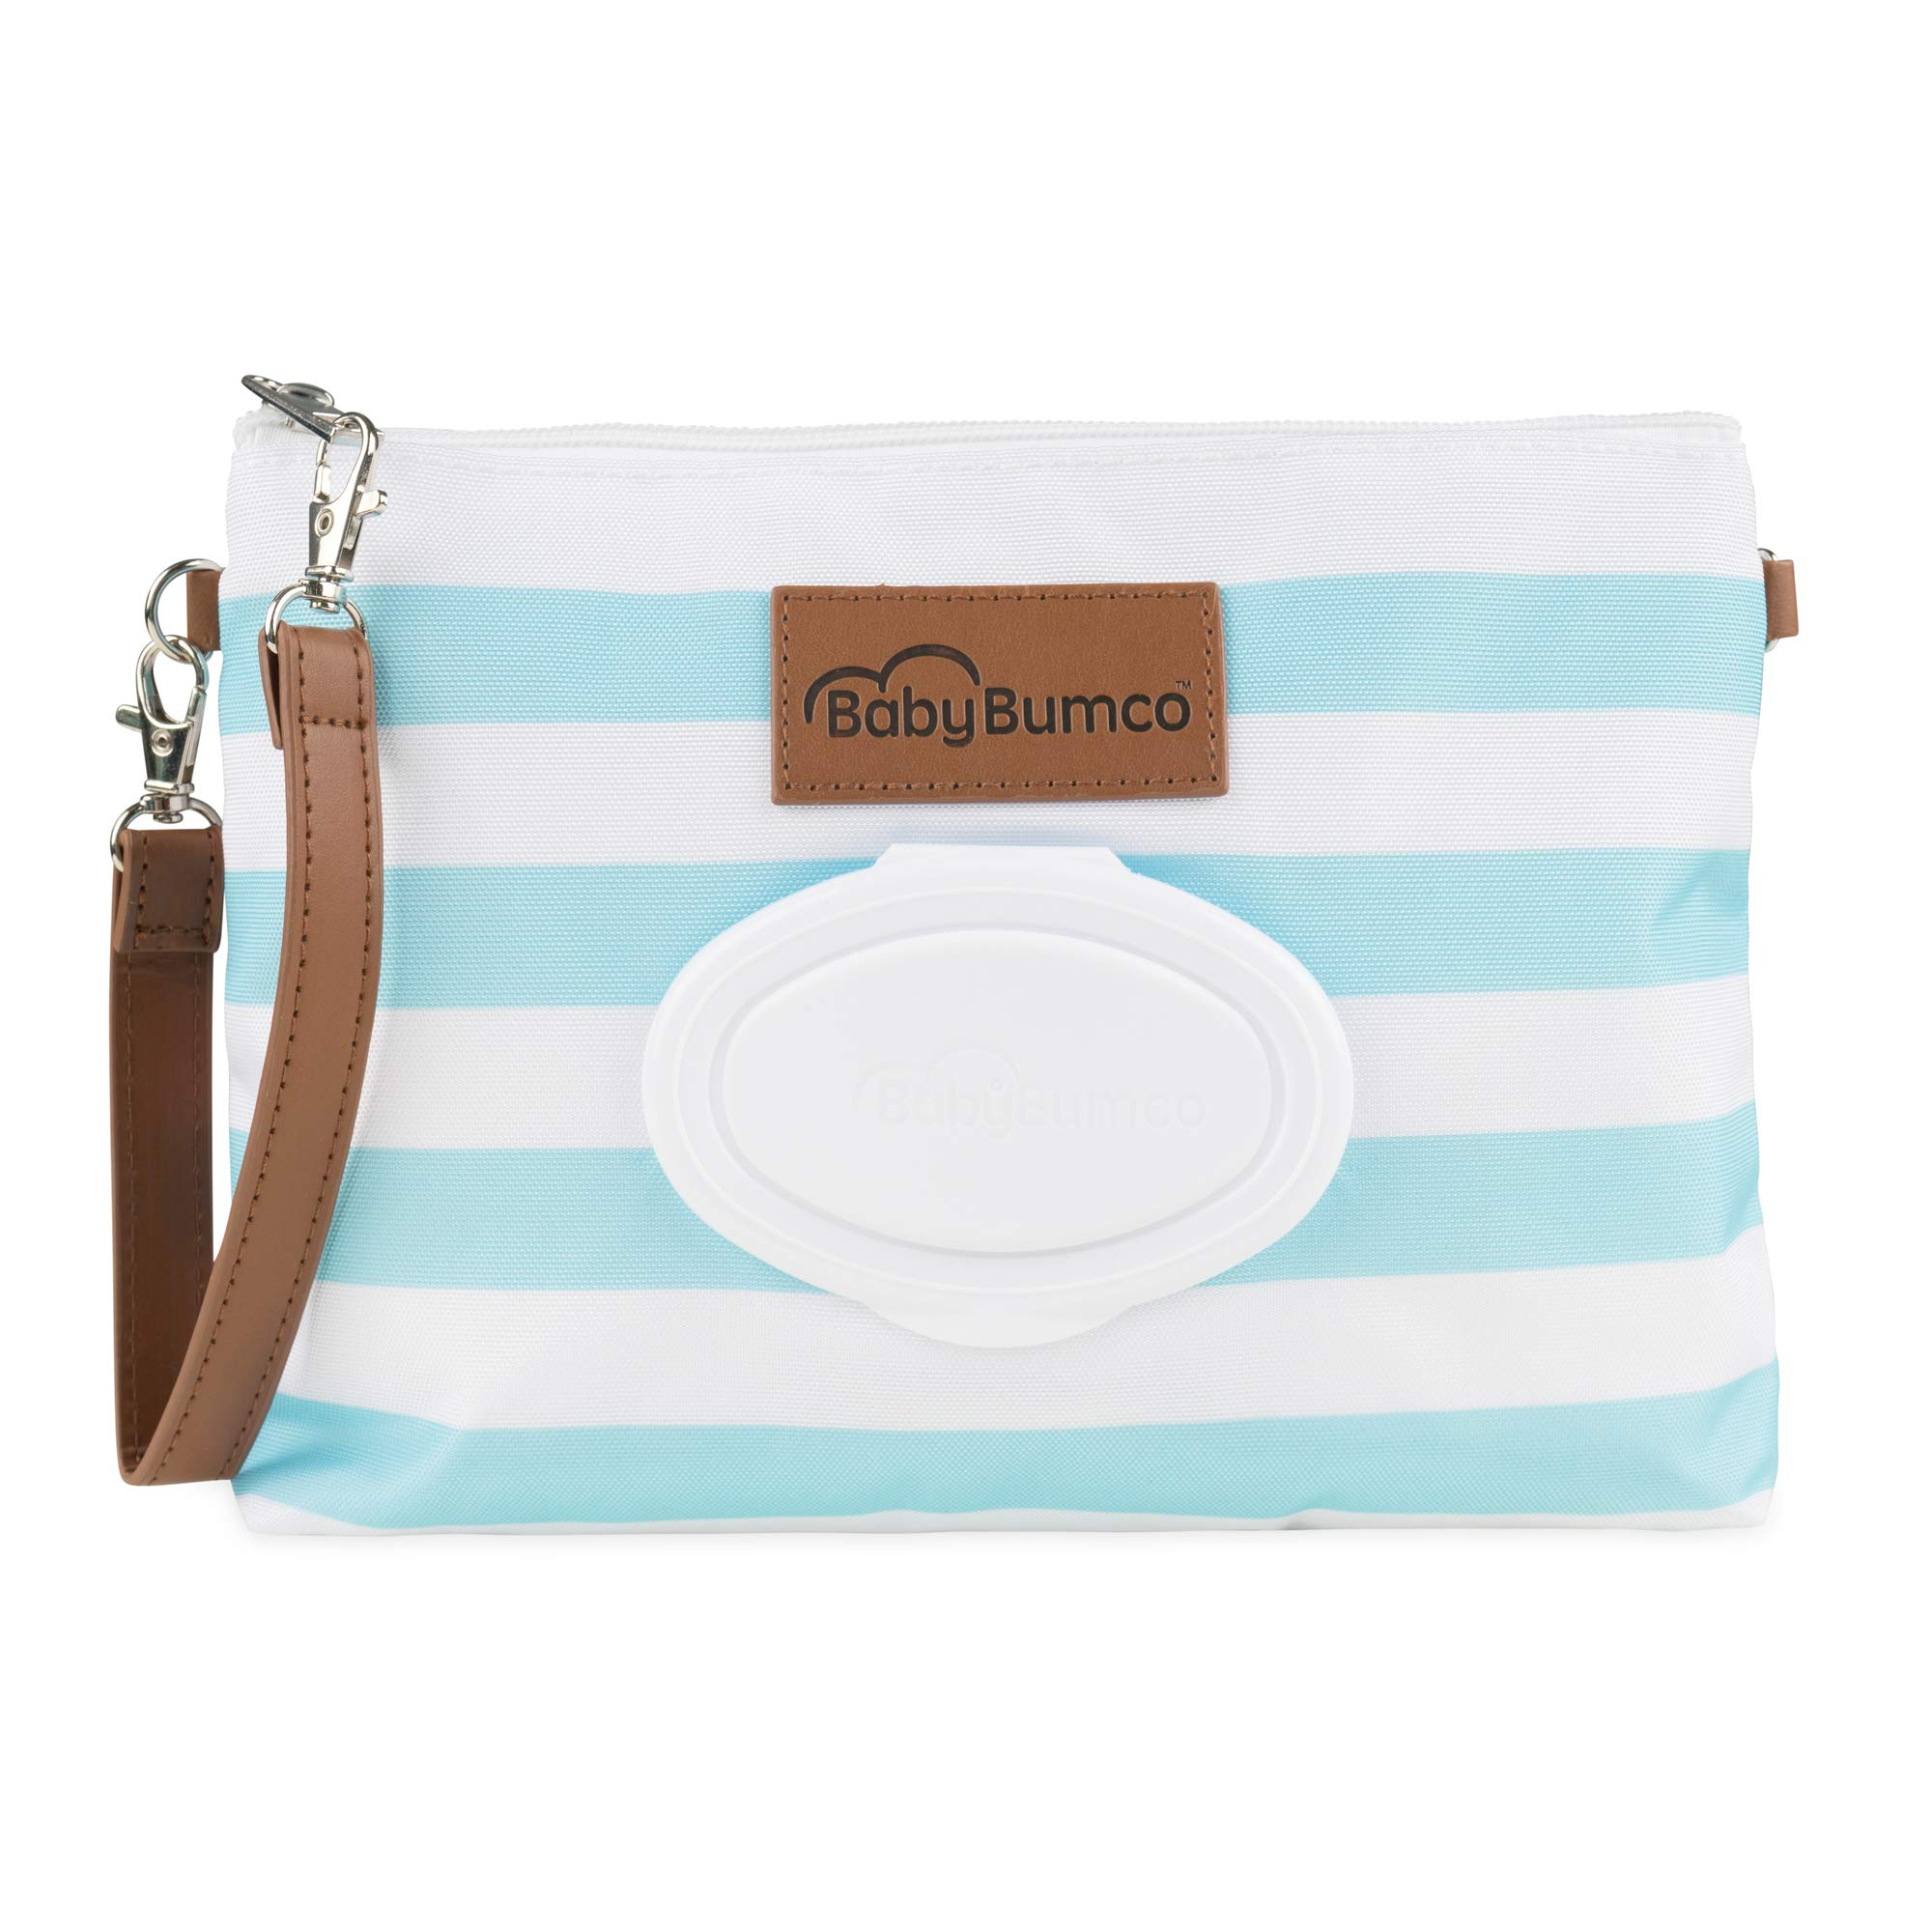 Baby Diaper Clutch with Refillable Wipes Dispenser - Baby Bumco Diaper Products (Sky Blue)